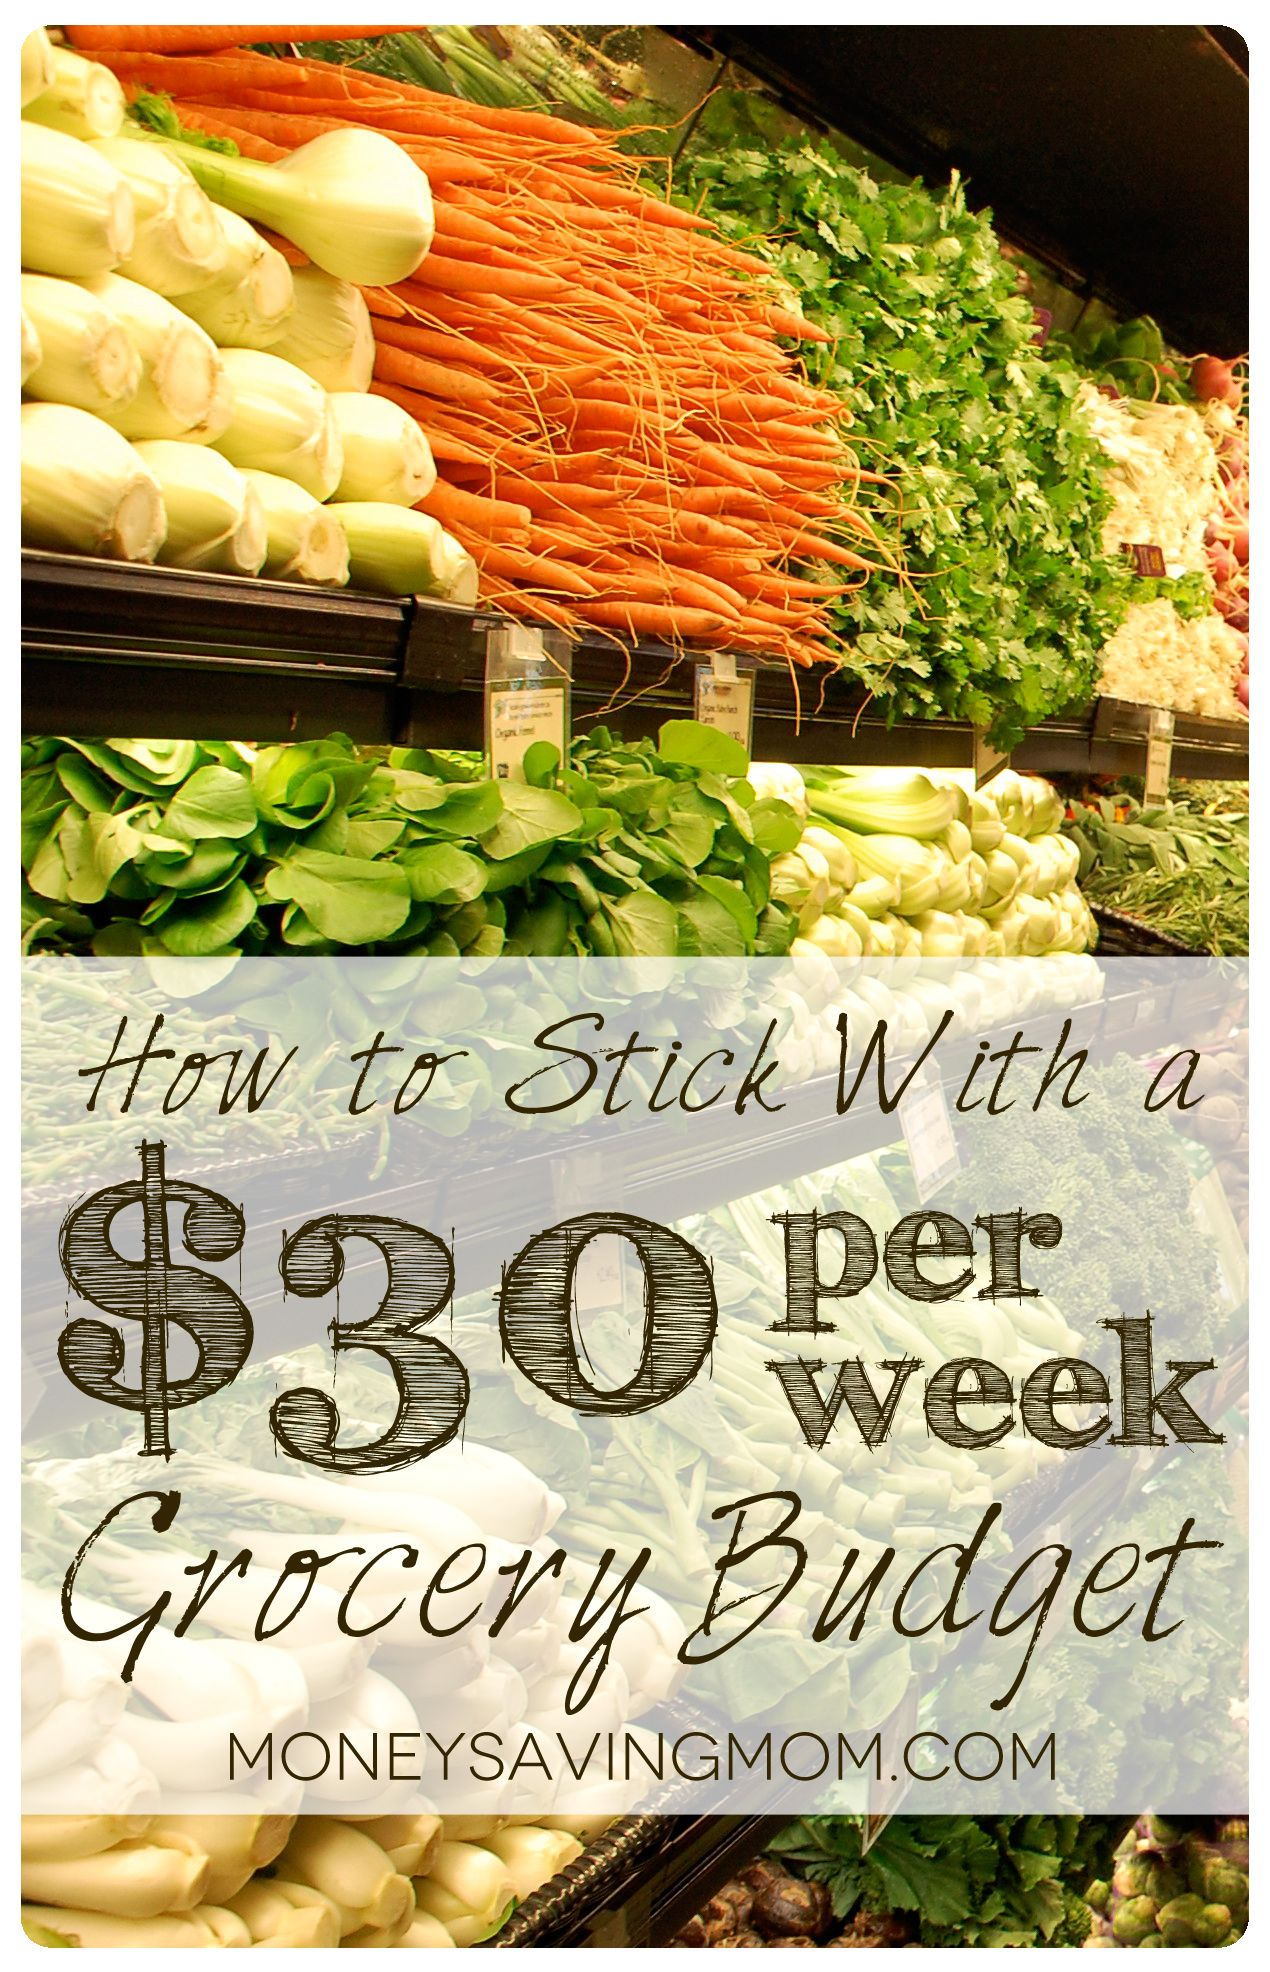 Is it possible to survive on a $30 per week grocery budget? | You ...